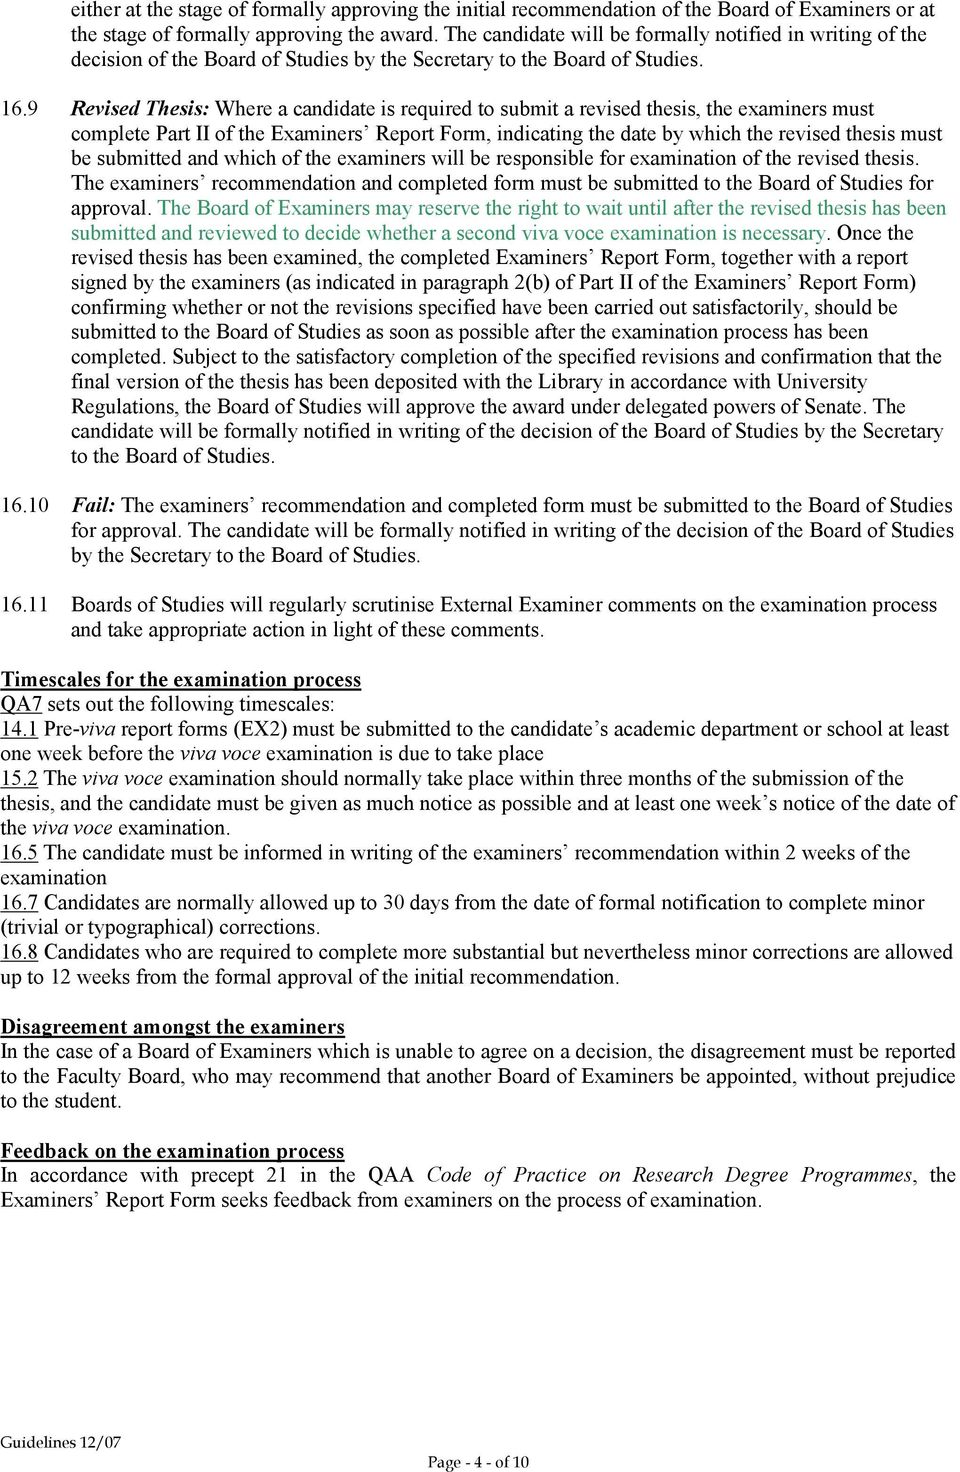 9 Revised : Where a candidate is required to submit a revised thesis, the examiners must complete Part II of the Examiners Report Form, indicating the date by which the revised thesis must be